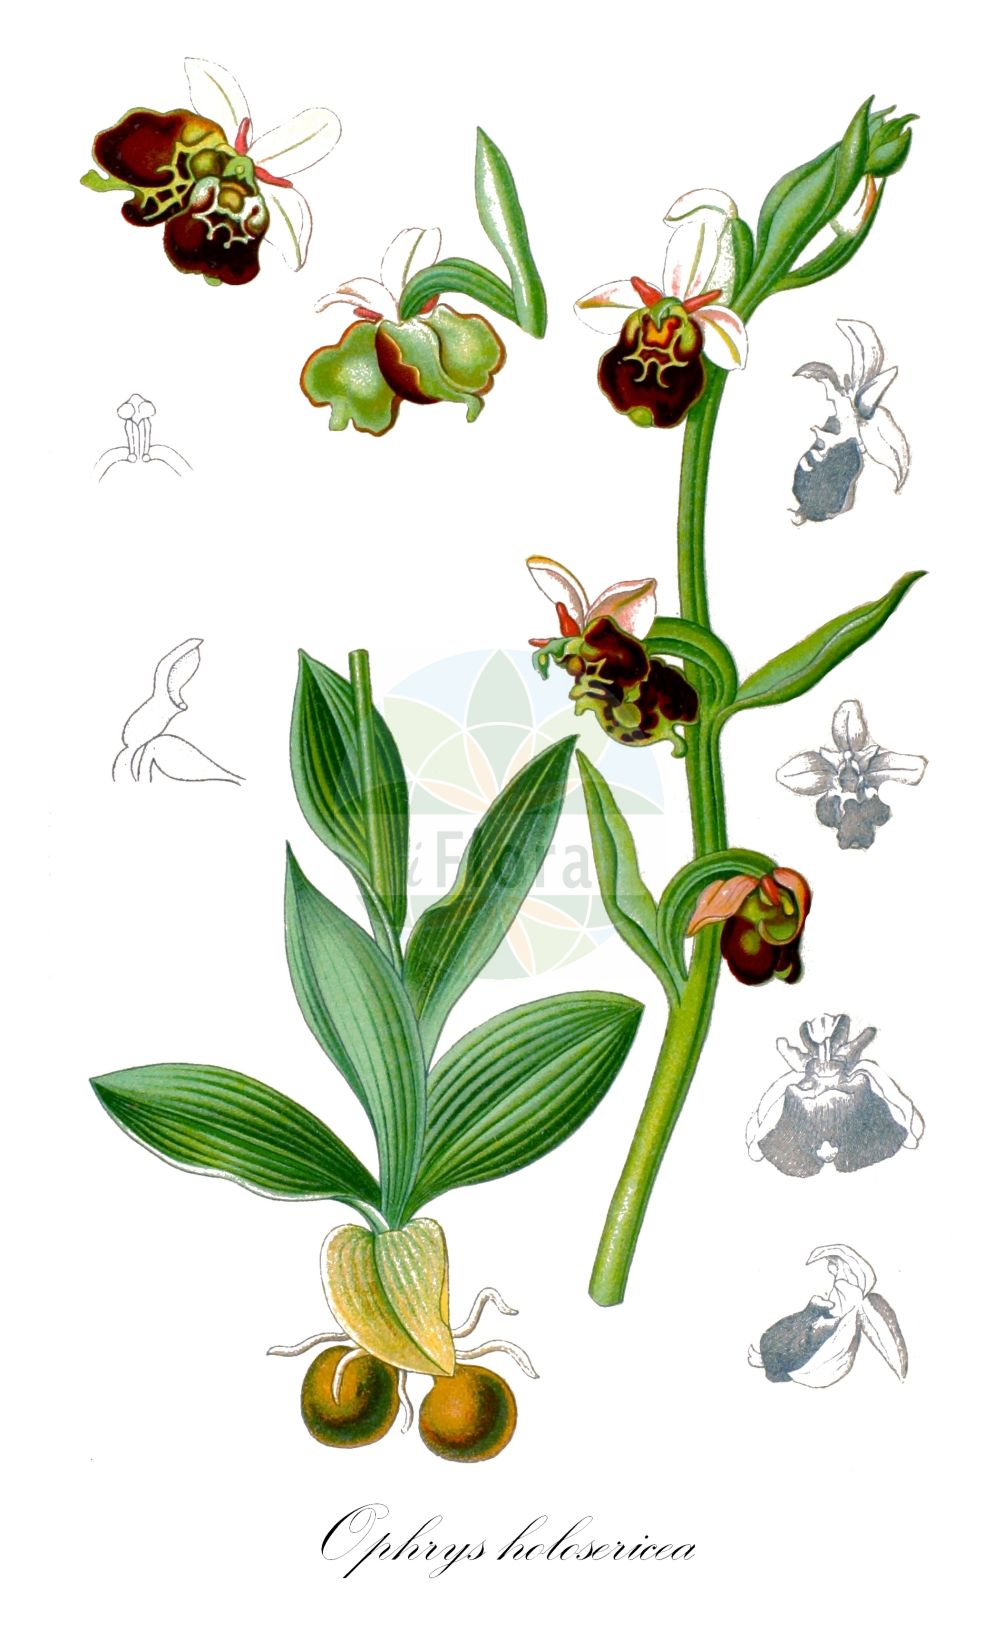 Historische Abbildung von Ophrys holosericea (Hummel-Ragwurz - Late Spider-orchid). ---- Historical Drawing of Ophrys holosericea (Hummel-Ragwurz - Late Spider-orchid).(Ophrys holosericea,Hummel-Ragwurz,Late Spider-orchid,Arachnites fuciflora,Arachnites oxyrhynchus,Epipactis arachnites,Ophrys aegirtica,Ophrys annae,Ophrys aramaeorum,Ophrys baeteniorum,Ophrys bombyliflora,Ophrys brachyotes,Ophrys candica,Ophrys colossaea,Ophrys dinarica,Ophrys druentica,Ophrys elatior,Ophrys episcopalis,Ophrys flavescens,Ophrys fuciflora,Ophrys gracilis,Ophrys gresivaudanica,Ophrys halia,Ophrys helios,Ophrys kranjcevii,Ophrys linearis,Ophrys maxima,Ophrys medea,Ophrys minoa,Ophrys nicotiae,Ophrys obscura,Ophrys oestrifera,Ophrys pharia,Ophrys posidonia,Ophrys serotina,Ophrys tetraloniae,Ophrys truncata,Ophrys untchjii,Orchis arachnites,Orchis fuciflora,Ophrys,Ragwurz,Bee Orchid,Orchidaceae,Knabenkrautgewaechse;Orchideen,Orchid family,Schulze (1892-1894))